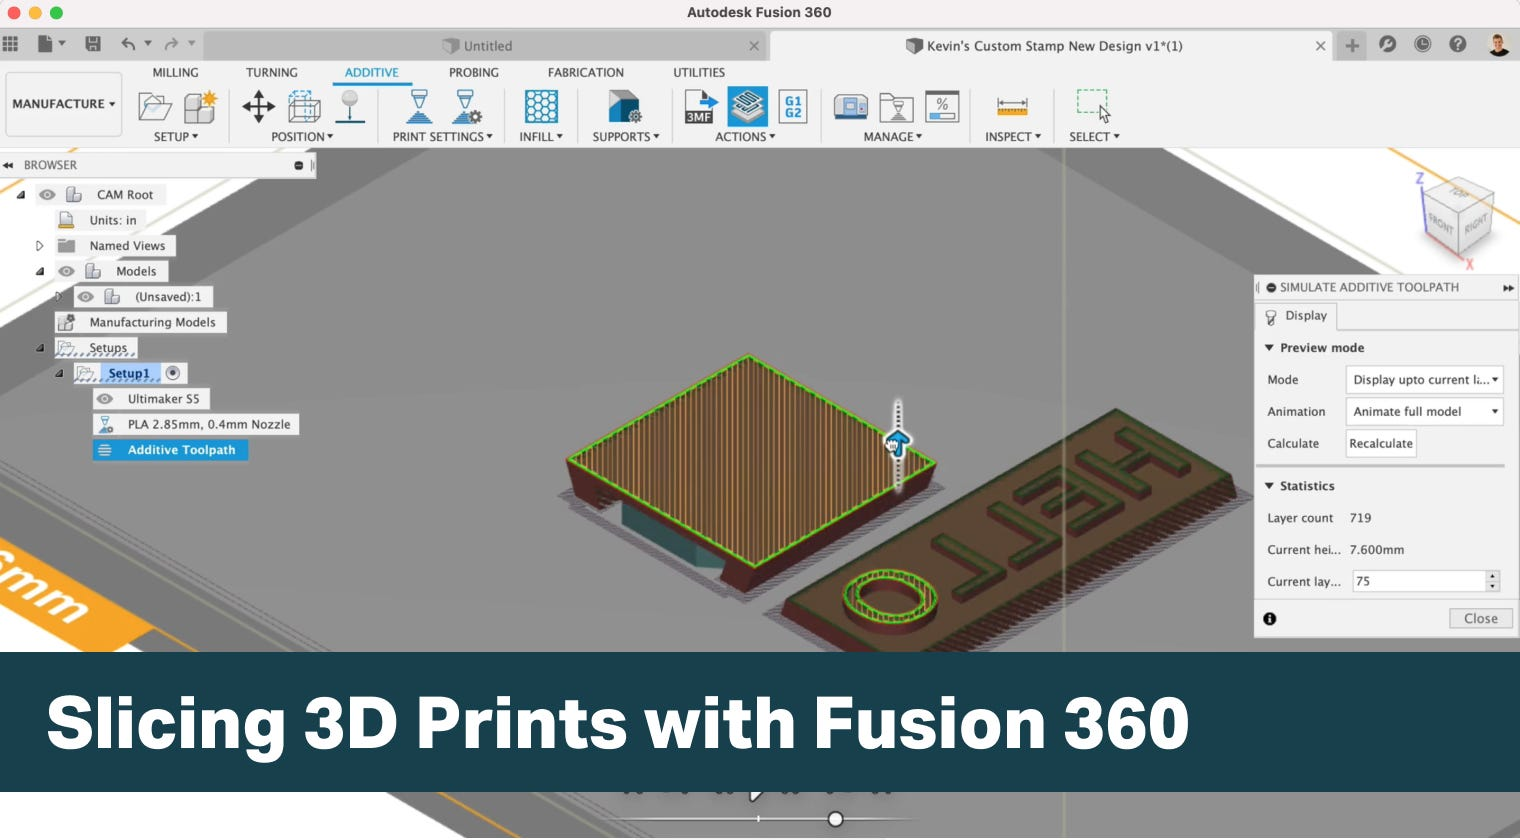 Slicing 3D Prints with Fusion 360 additive tools.